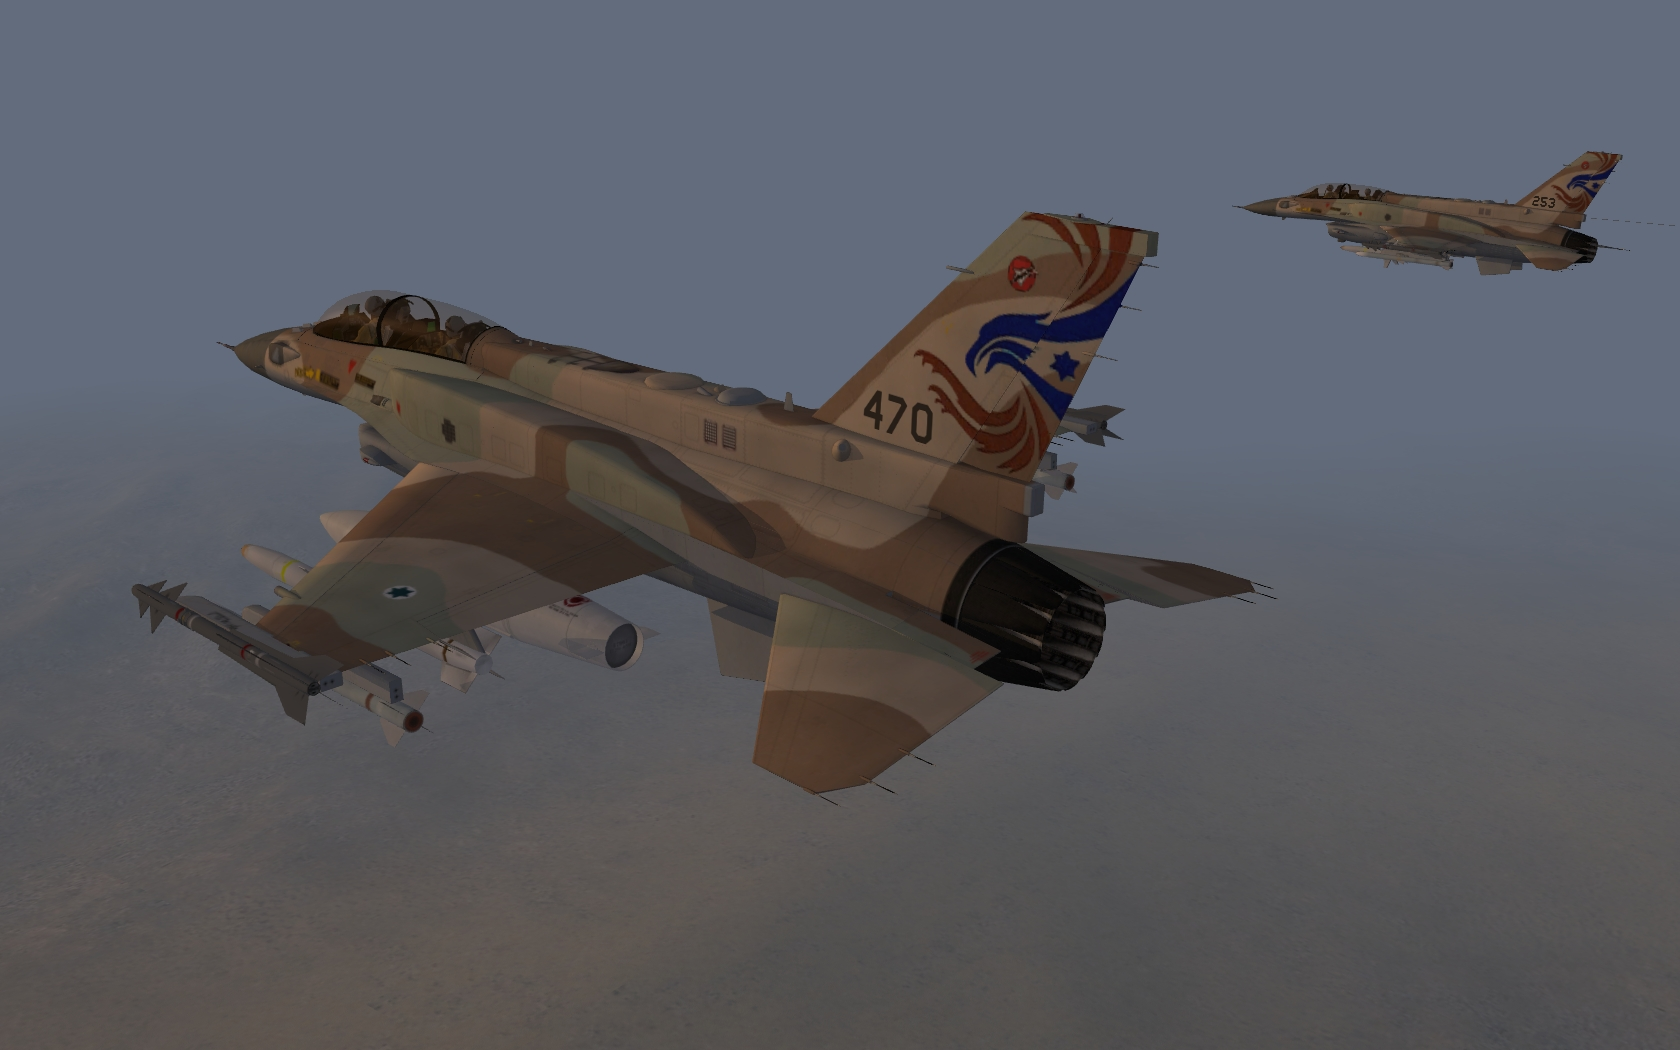 Israeli Air Force: Always Ready